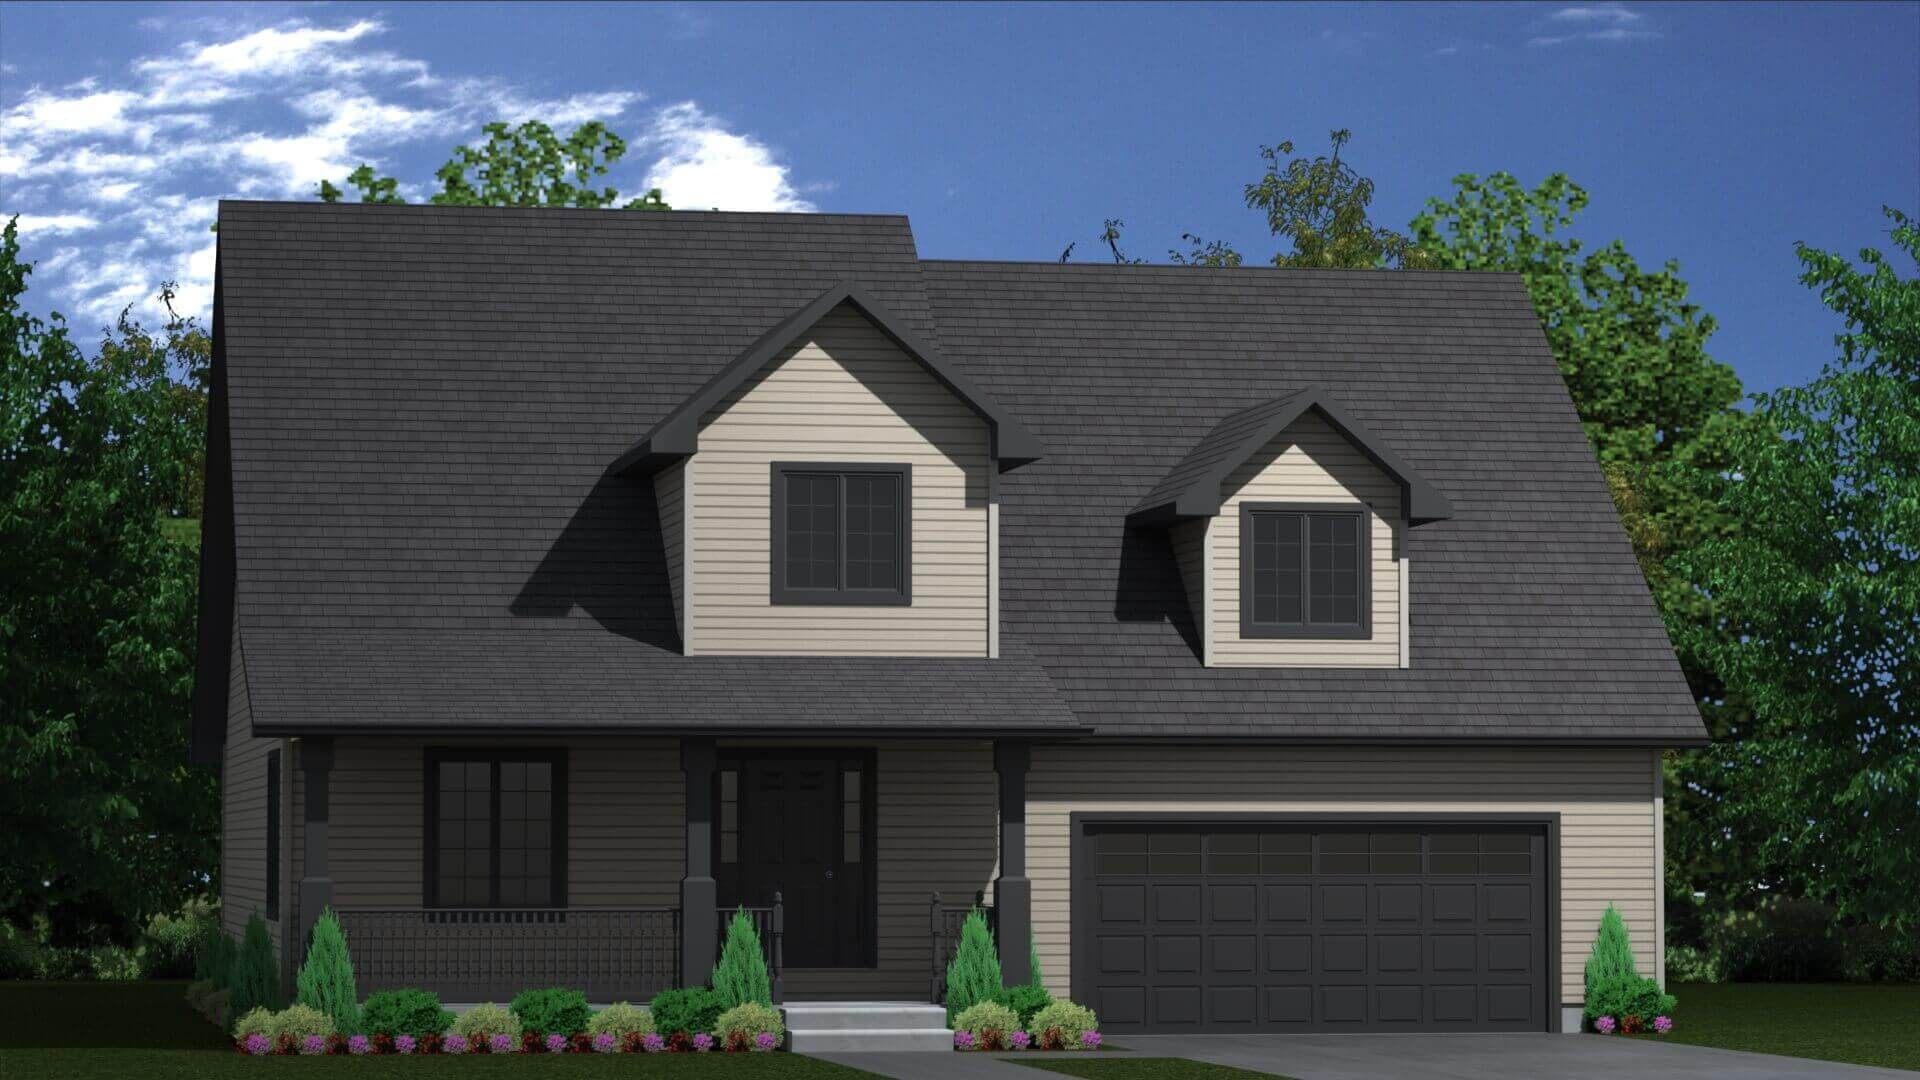 2278 sq.ft. timber mart house 3 bed 3 bath exterior render